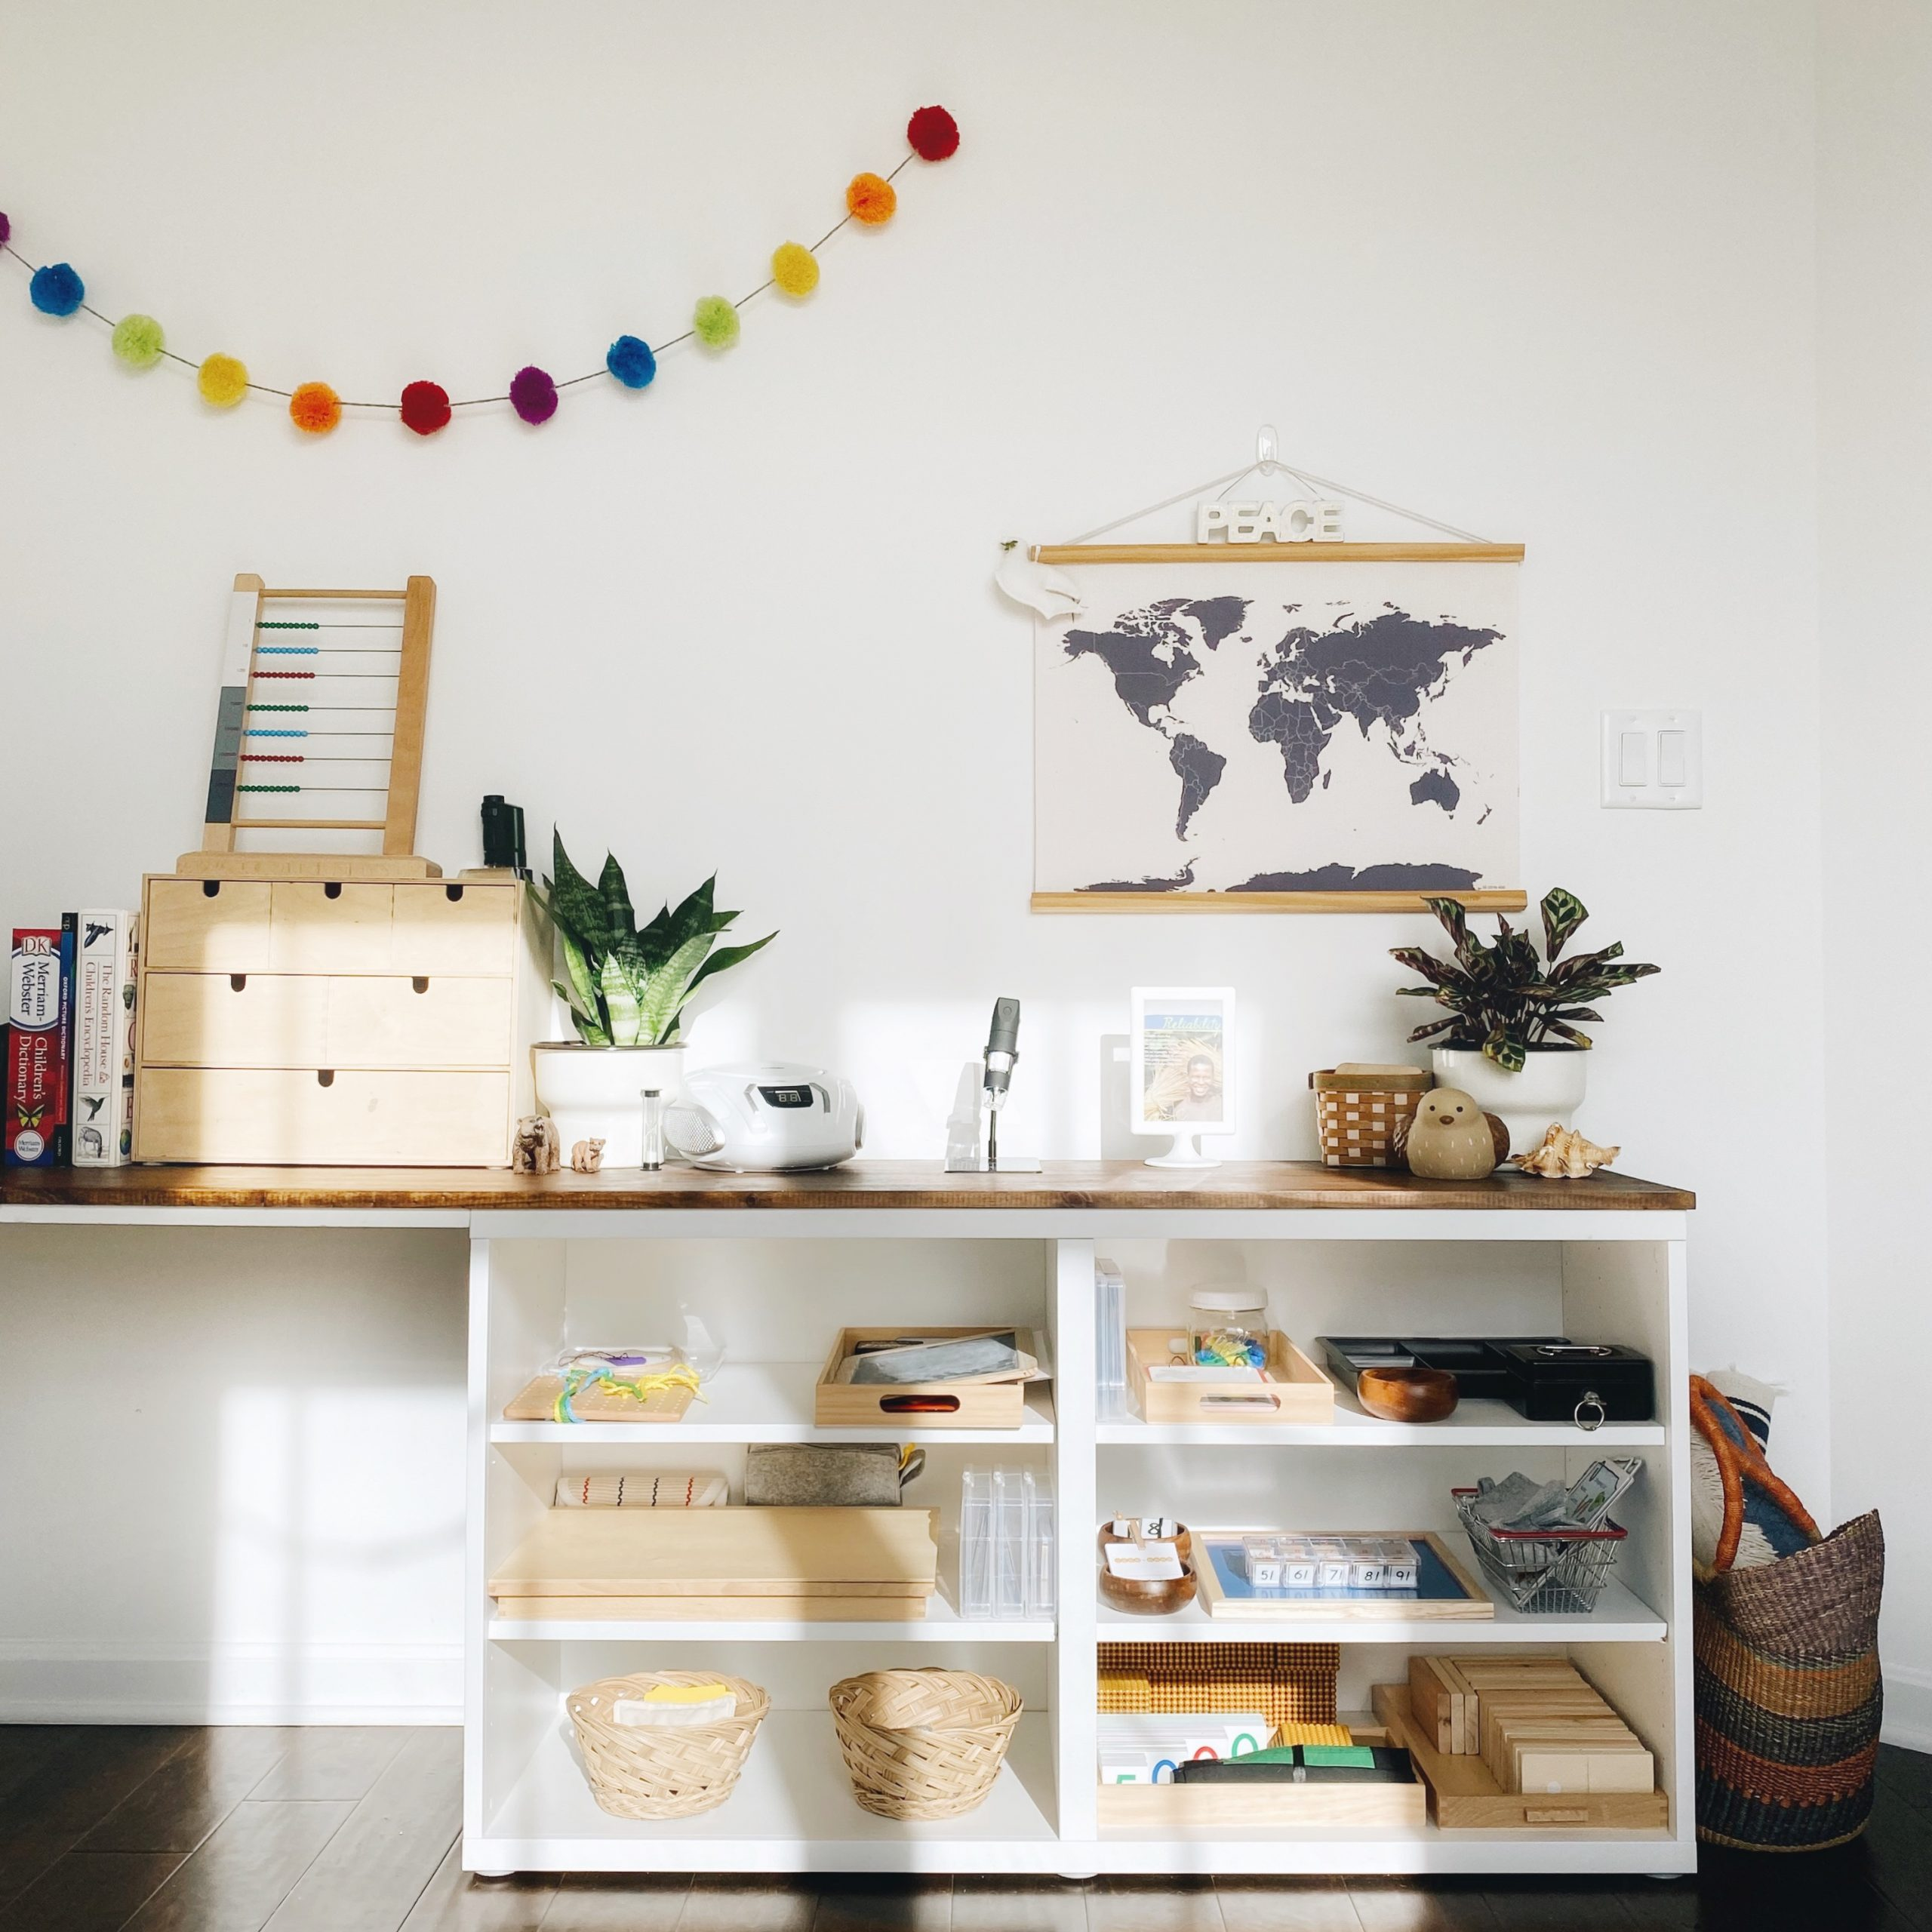 Looking for some ideas for your Montessori 4-year-old at home? Here's a detailed look at what Montessori-inspired materials and activities are currently available to our preschooler.